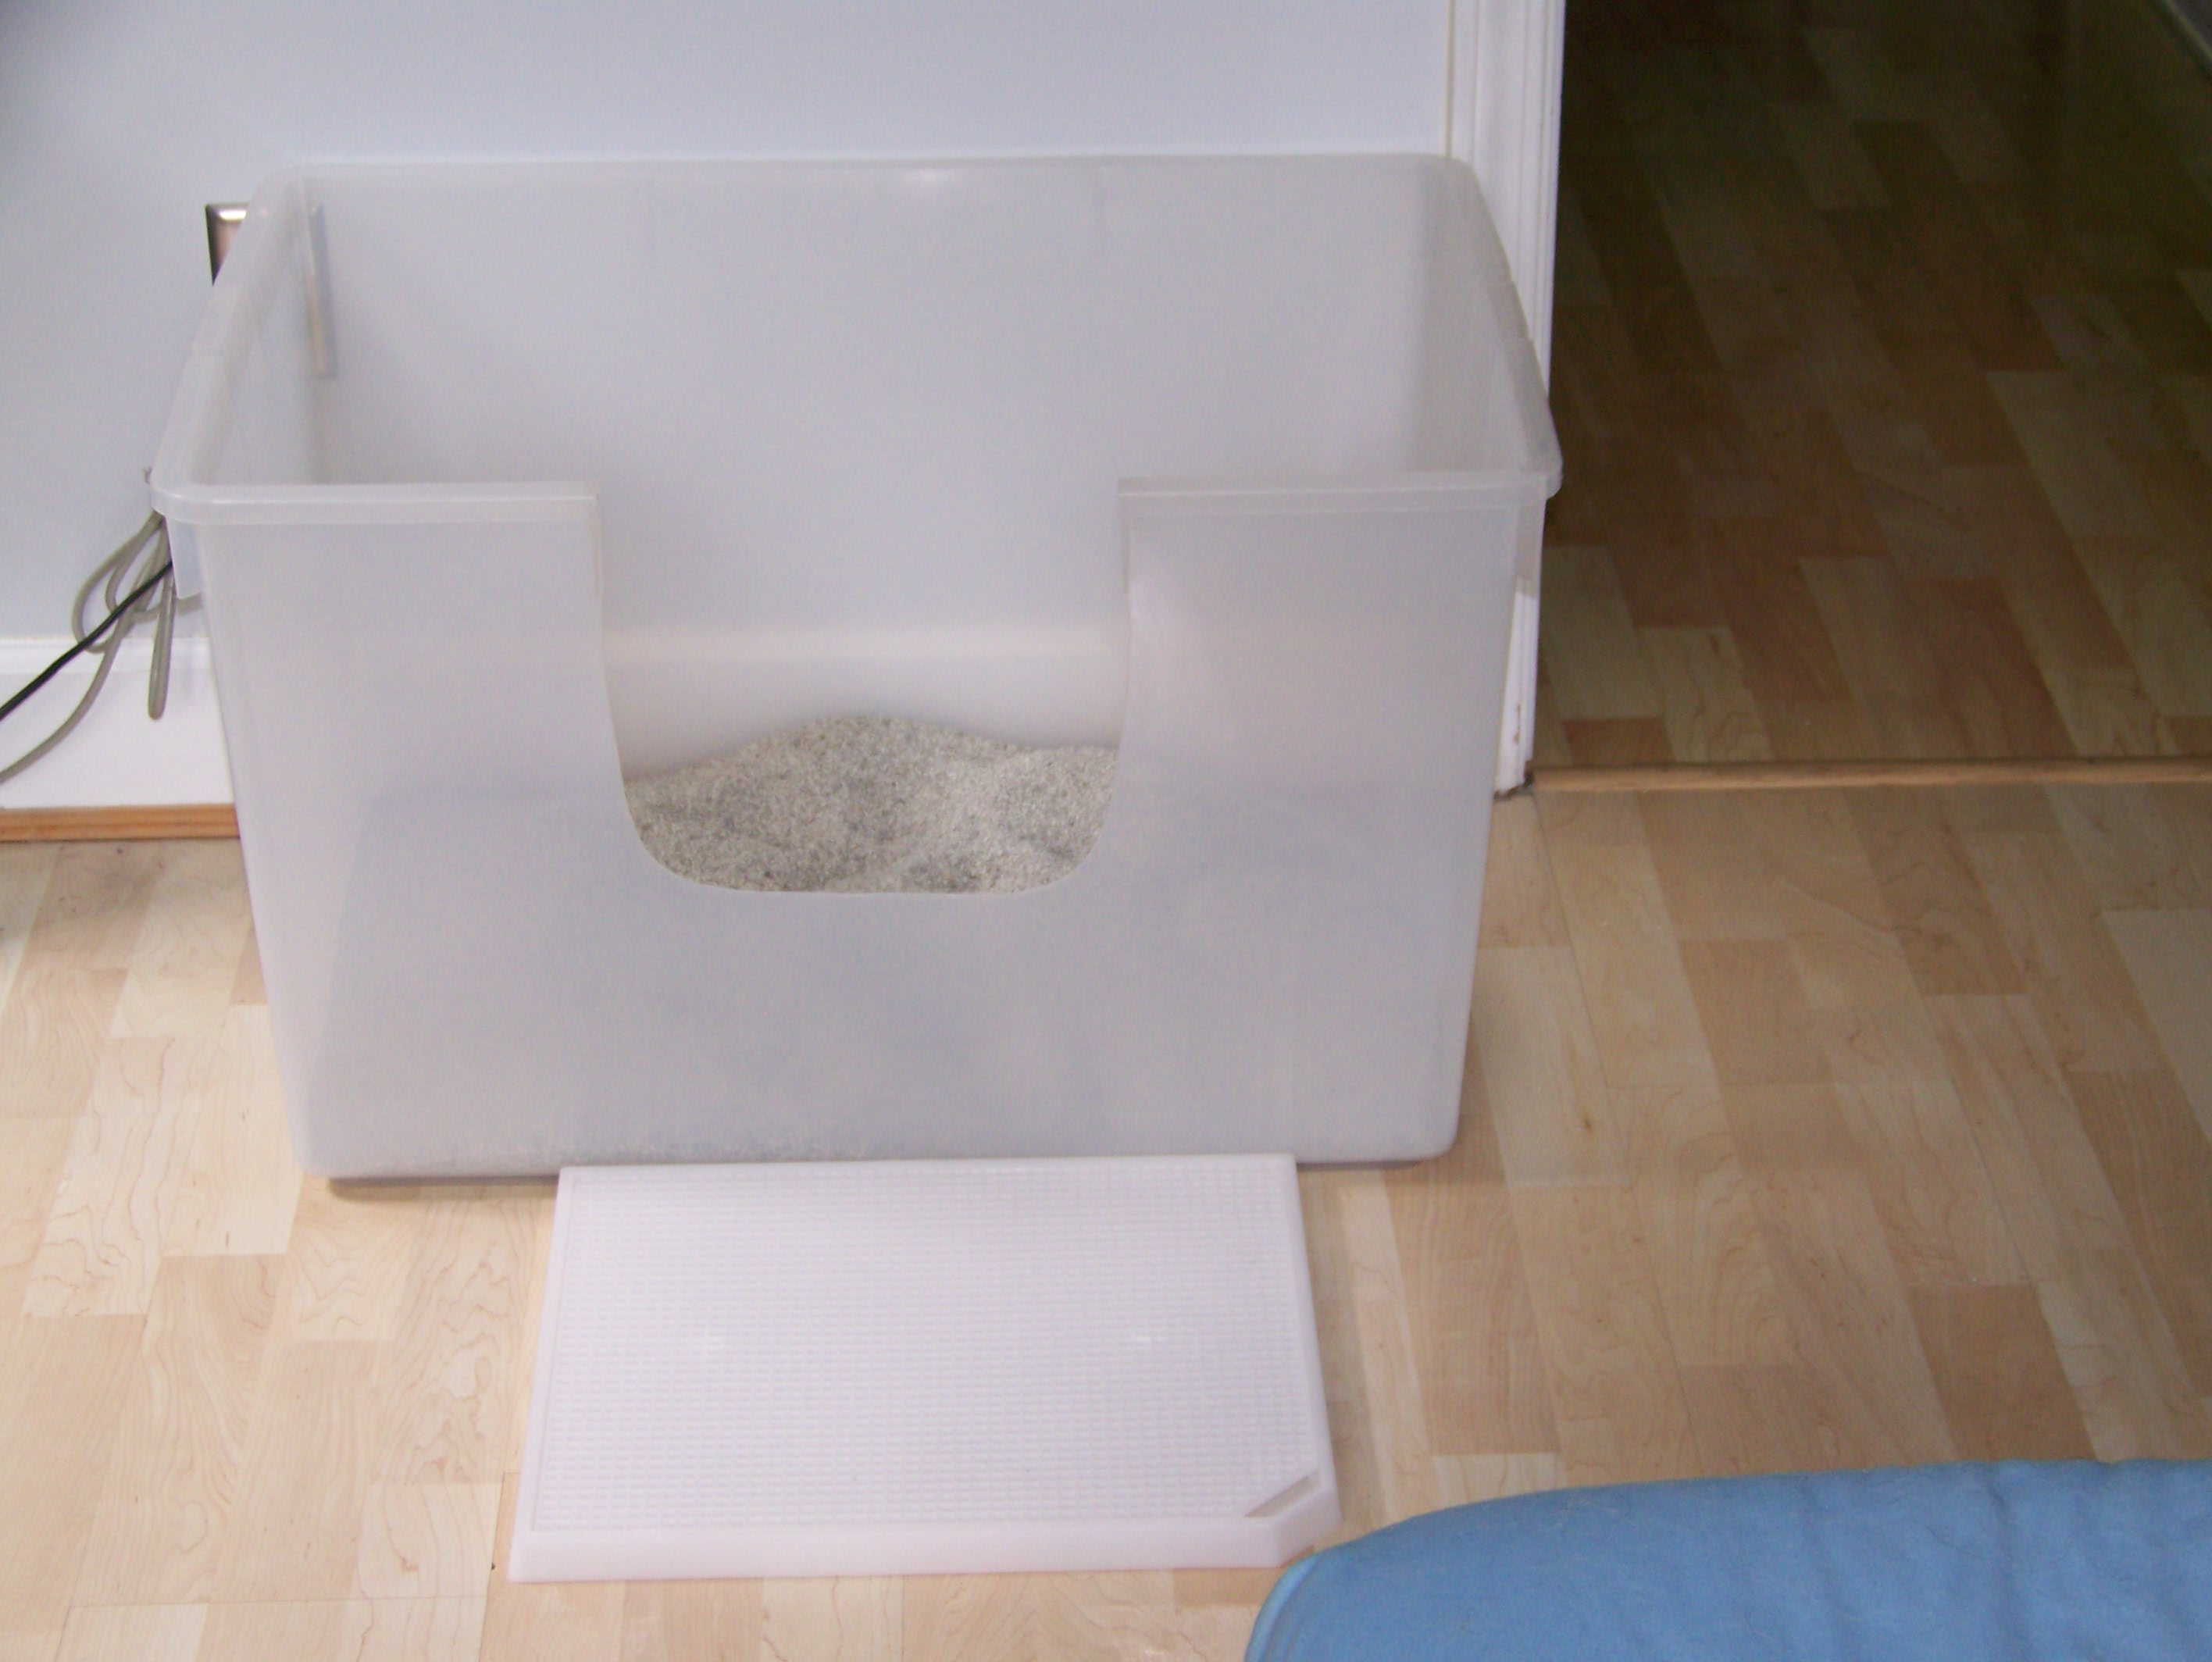 Large Clear Storage Totes Work Best Bigger Is Better With Cat Litter